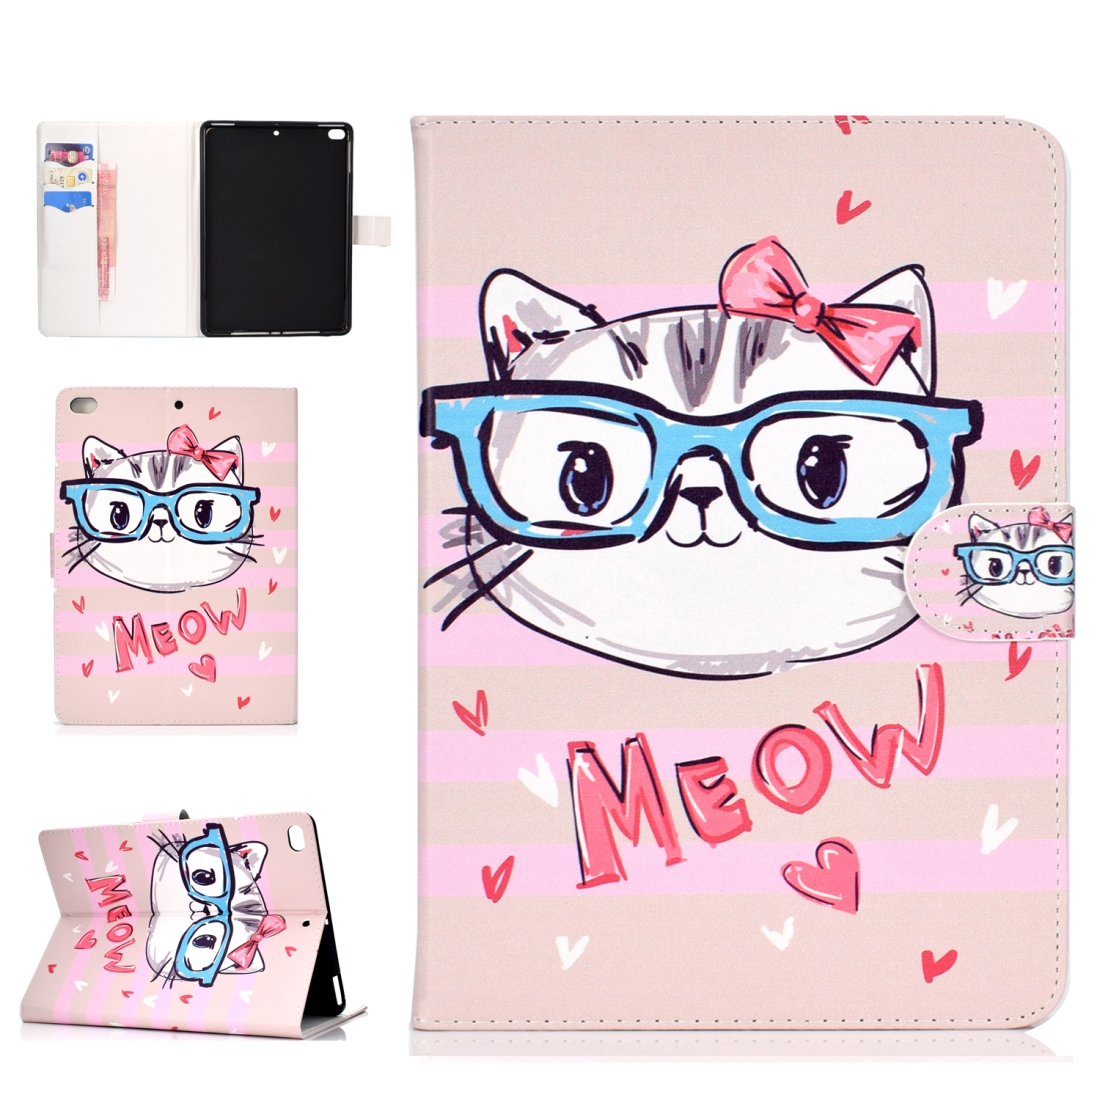 iPad 5th Generation Case Fits iPad 5,6,8, Stylish Leather Design & Auto Sleep Function (Glasses/Cat)